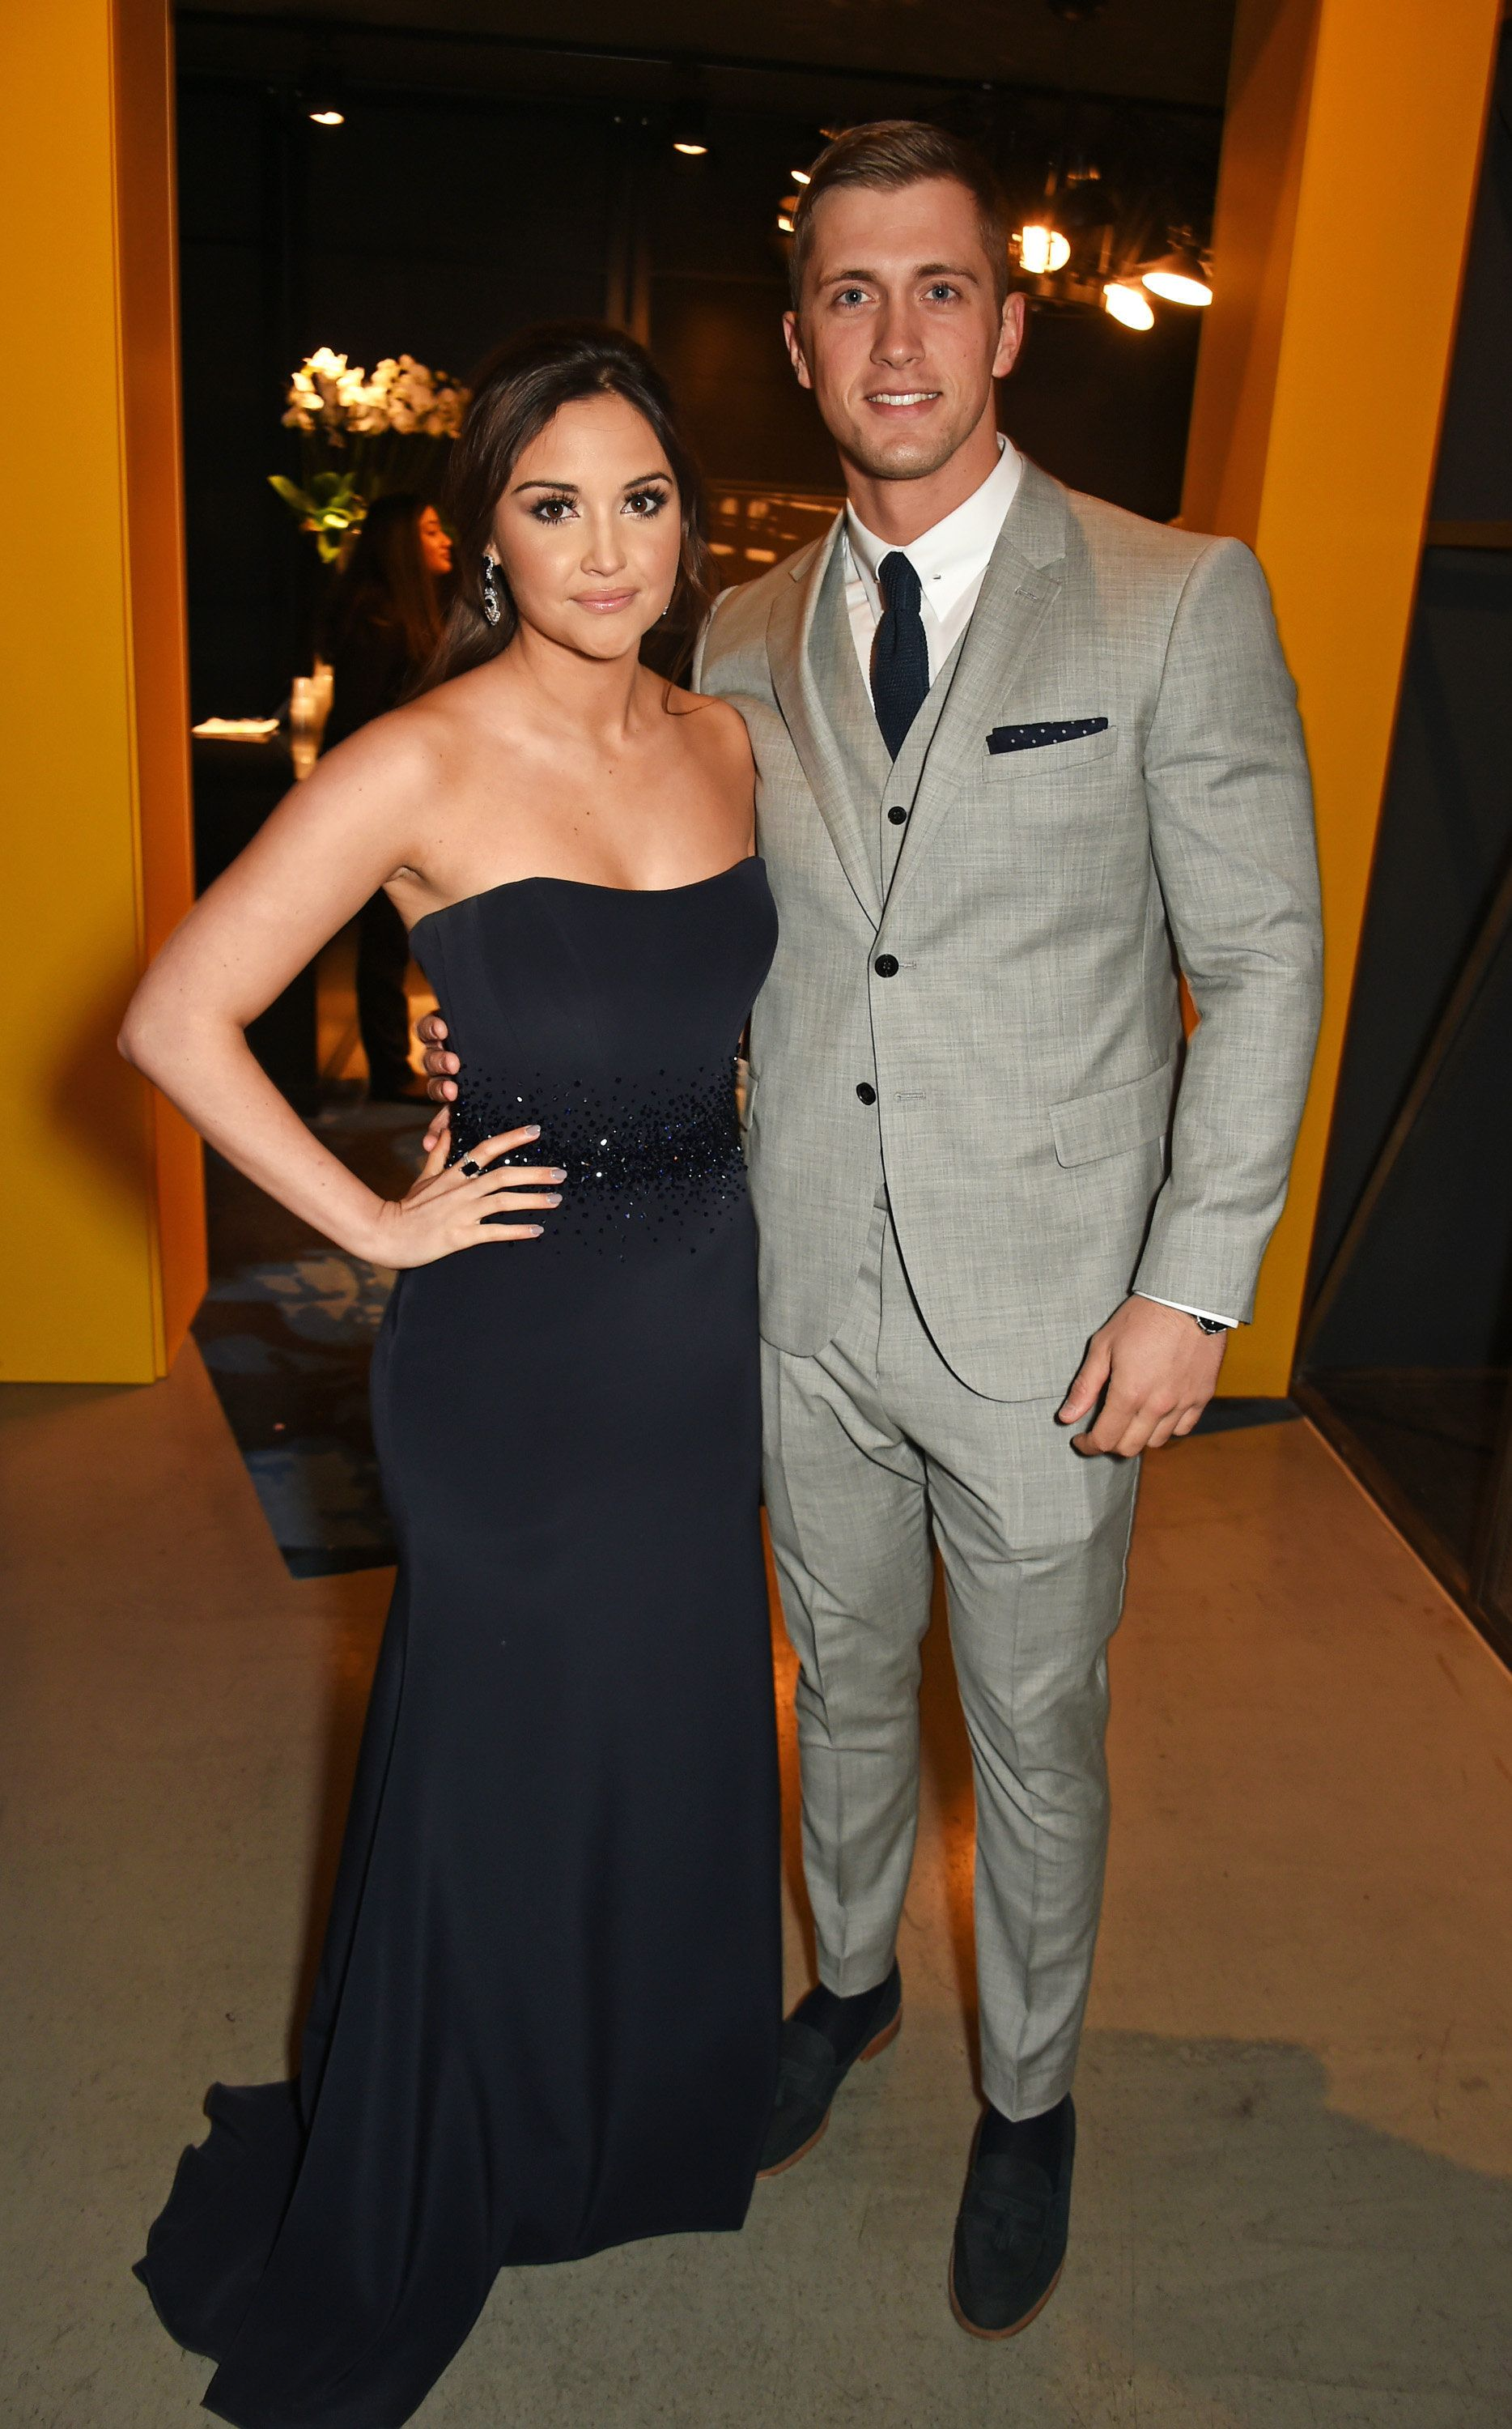 Jacqueline Jossa Reveals Why She And Dan Have Postponed Their